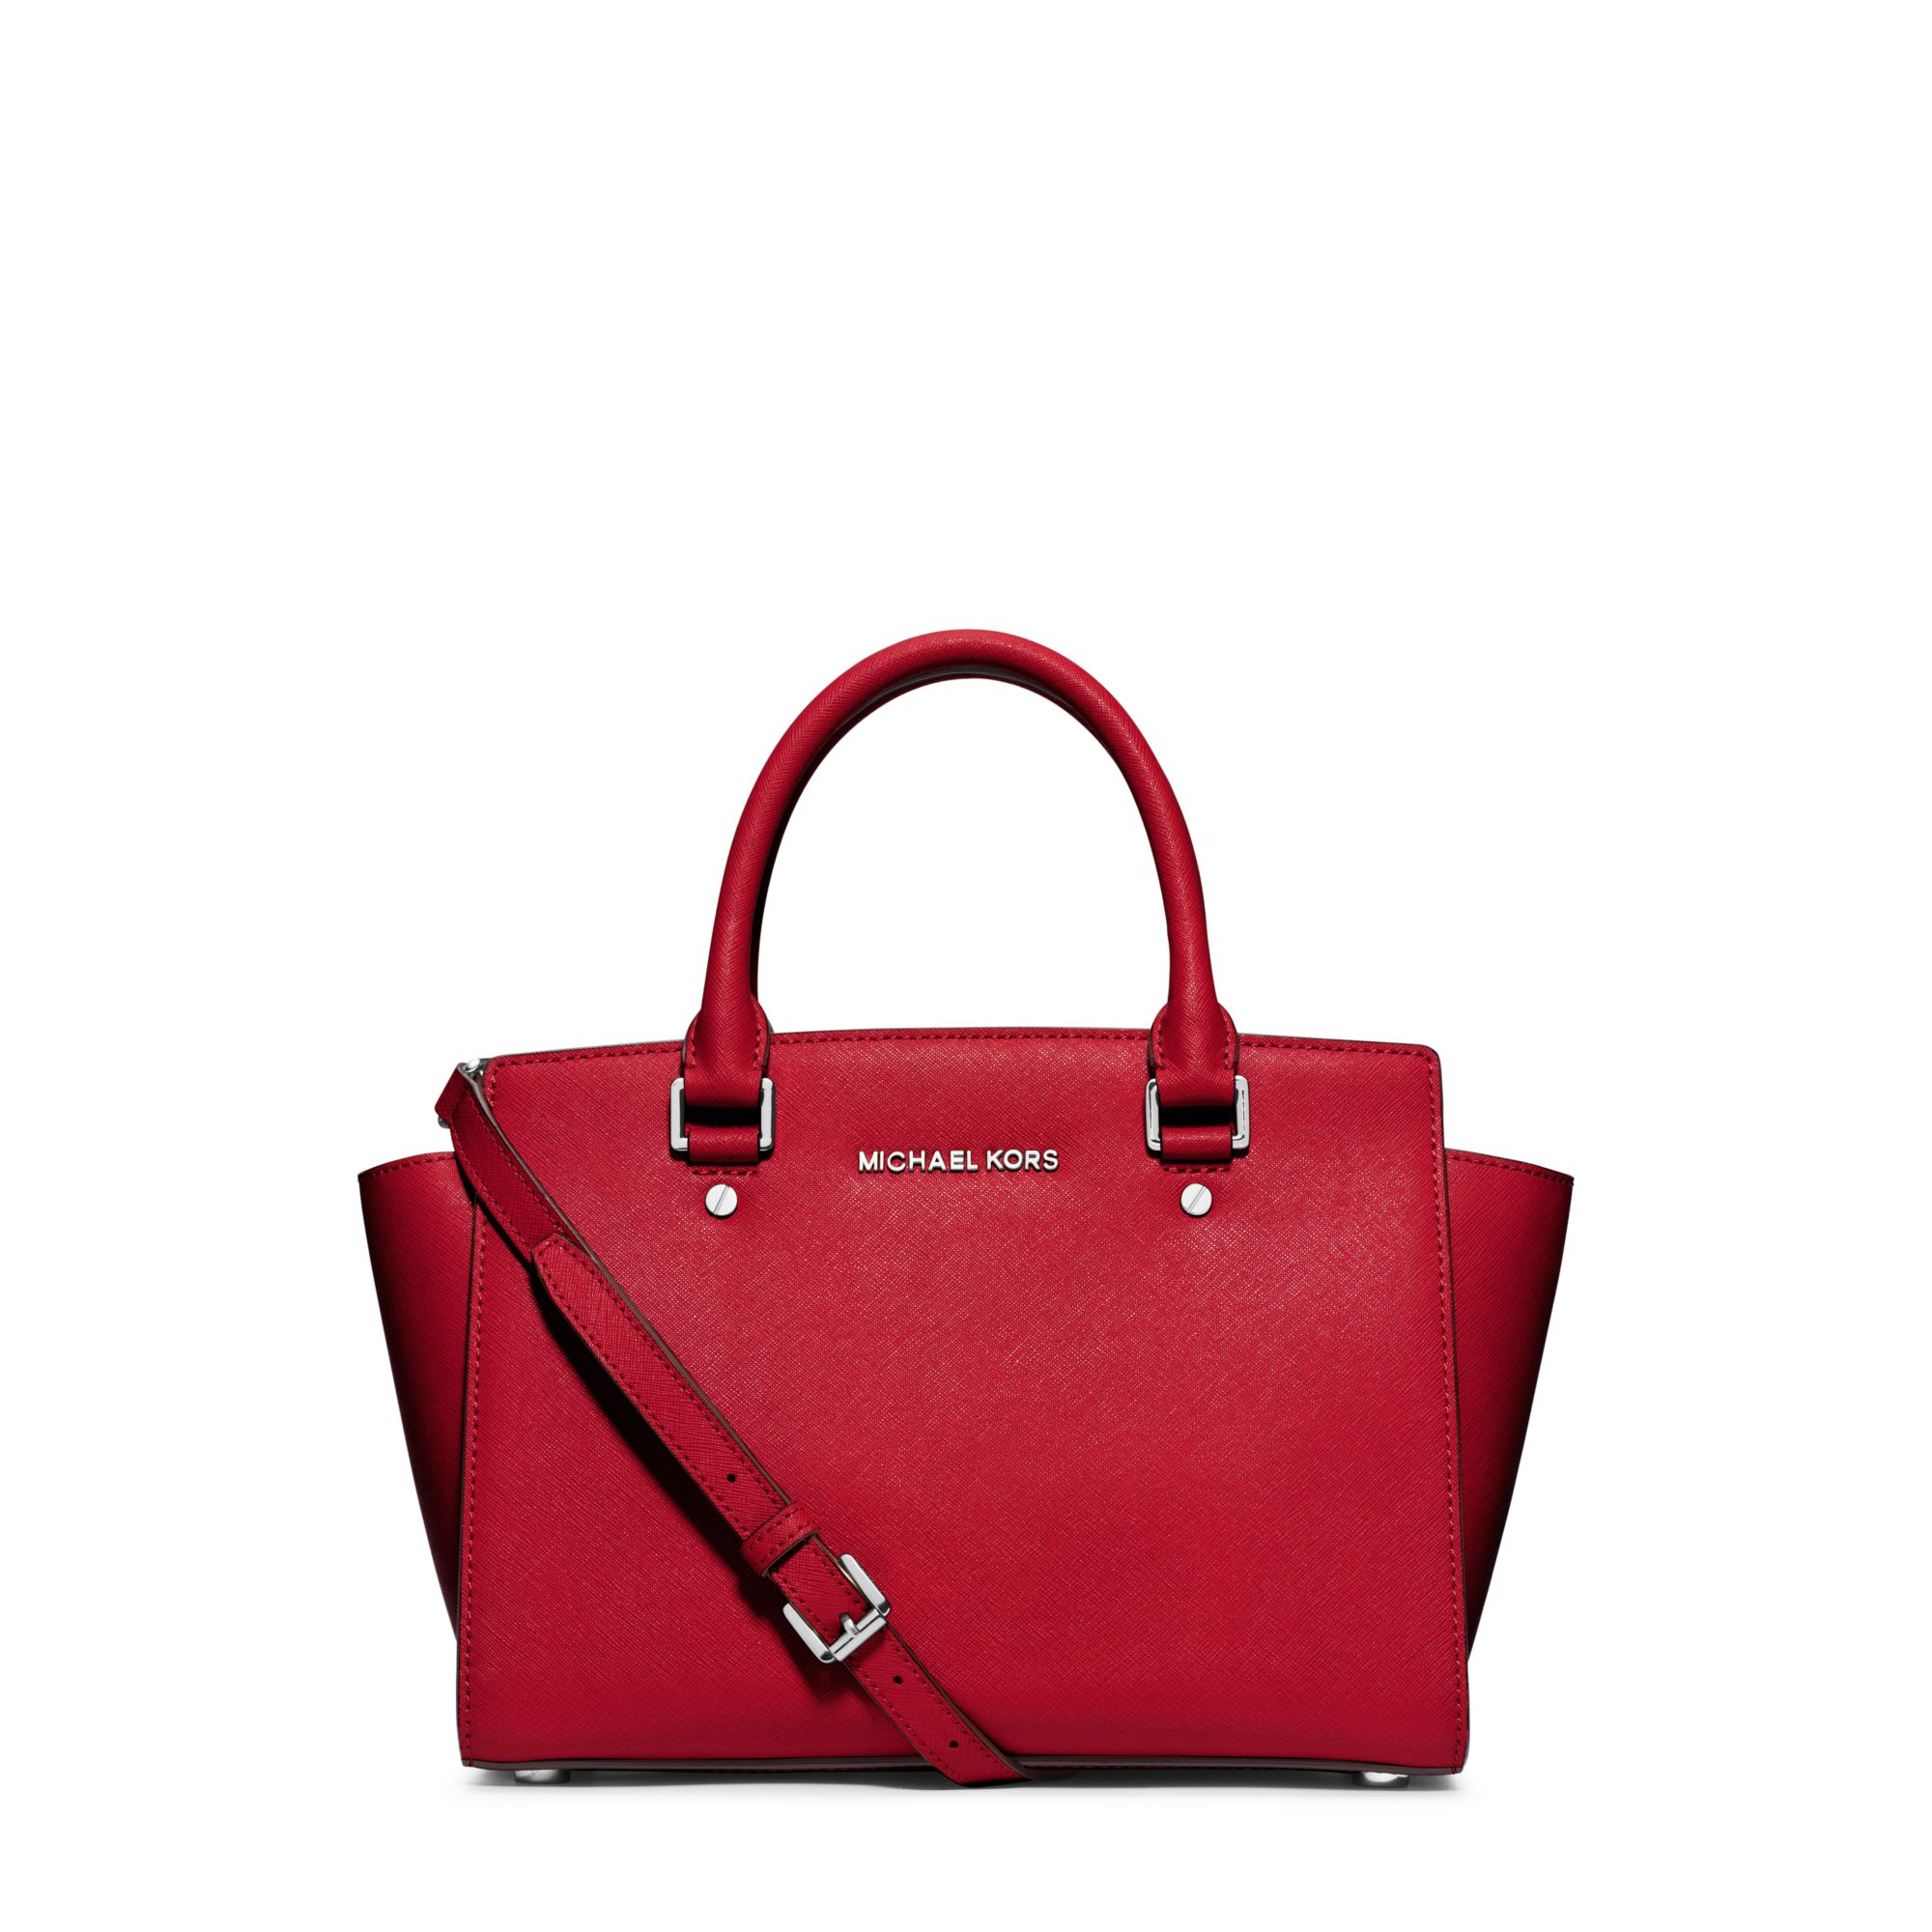 michael kors selma medium saffiano leather satchel in red chili lyst. Black Bedroom Furniture Sets. Home Design Ideas